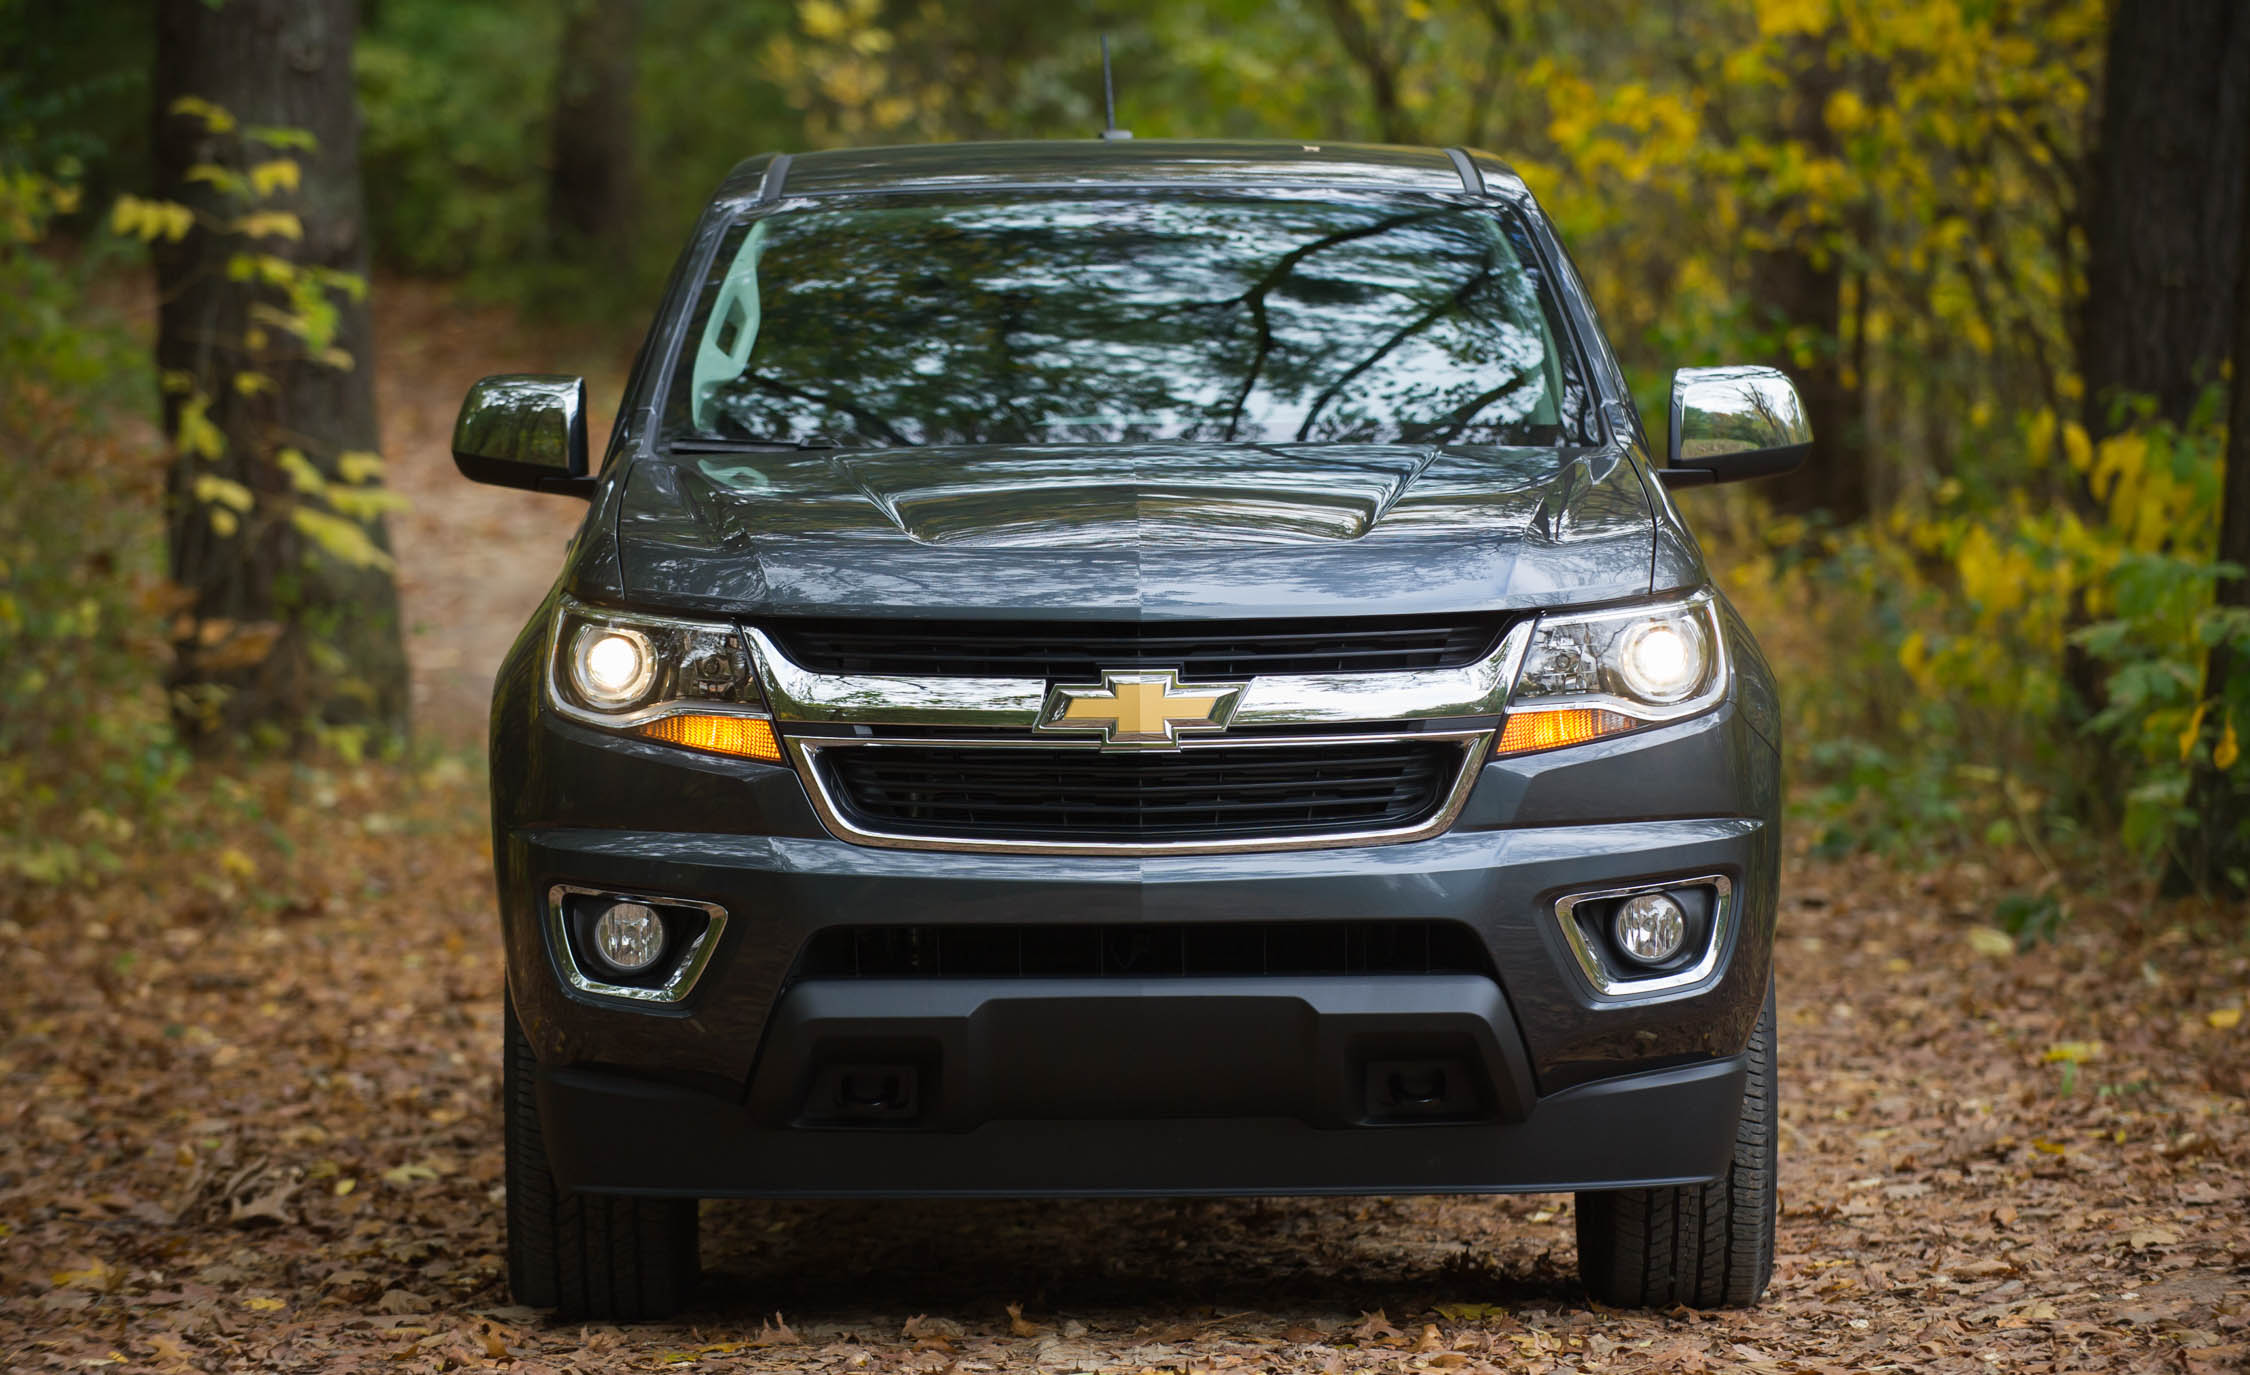 2017 Chevrolet Colorado Exterior Front (Photo 2 of 41)